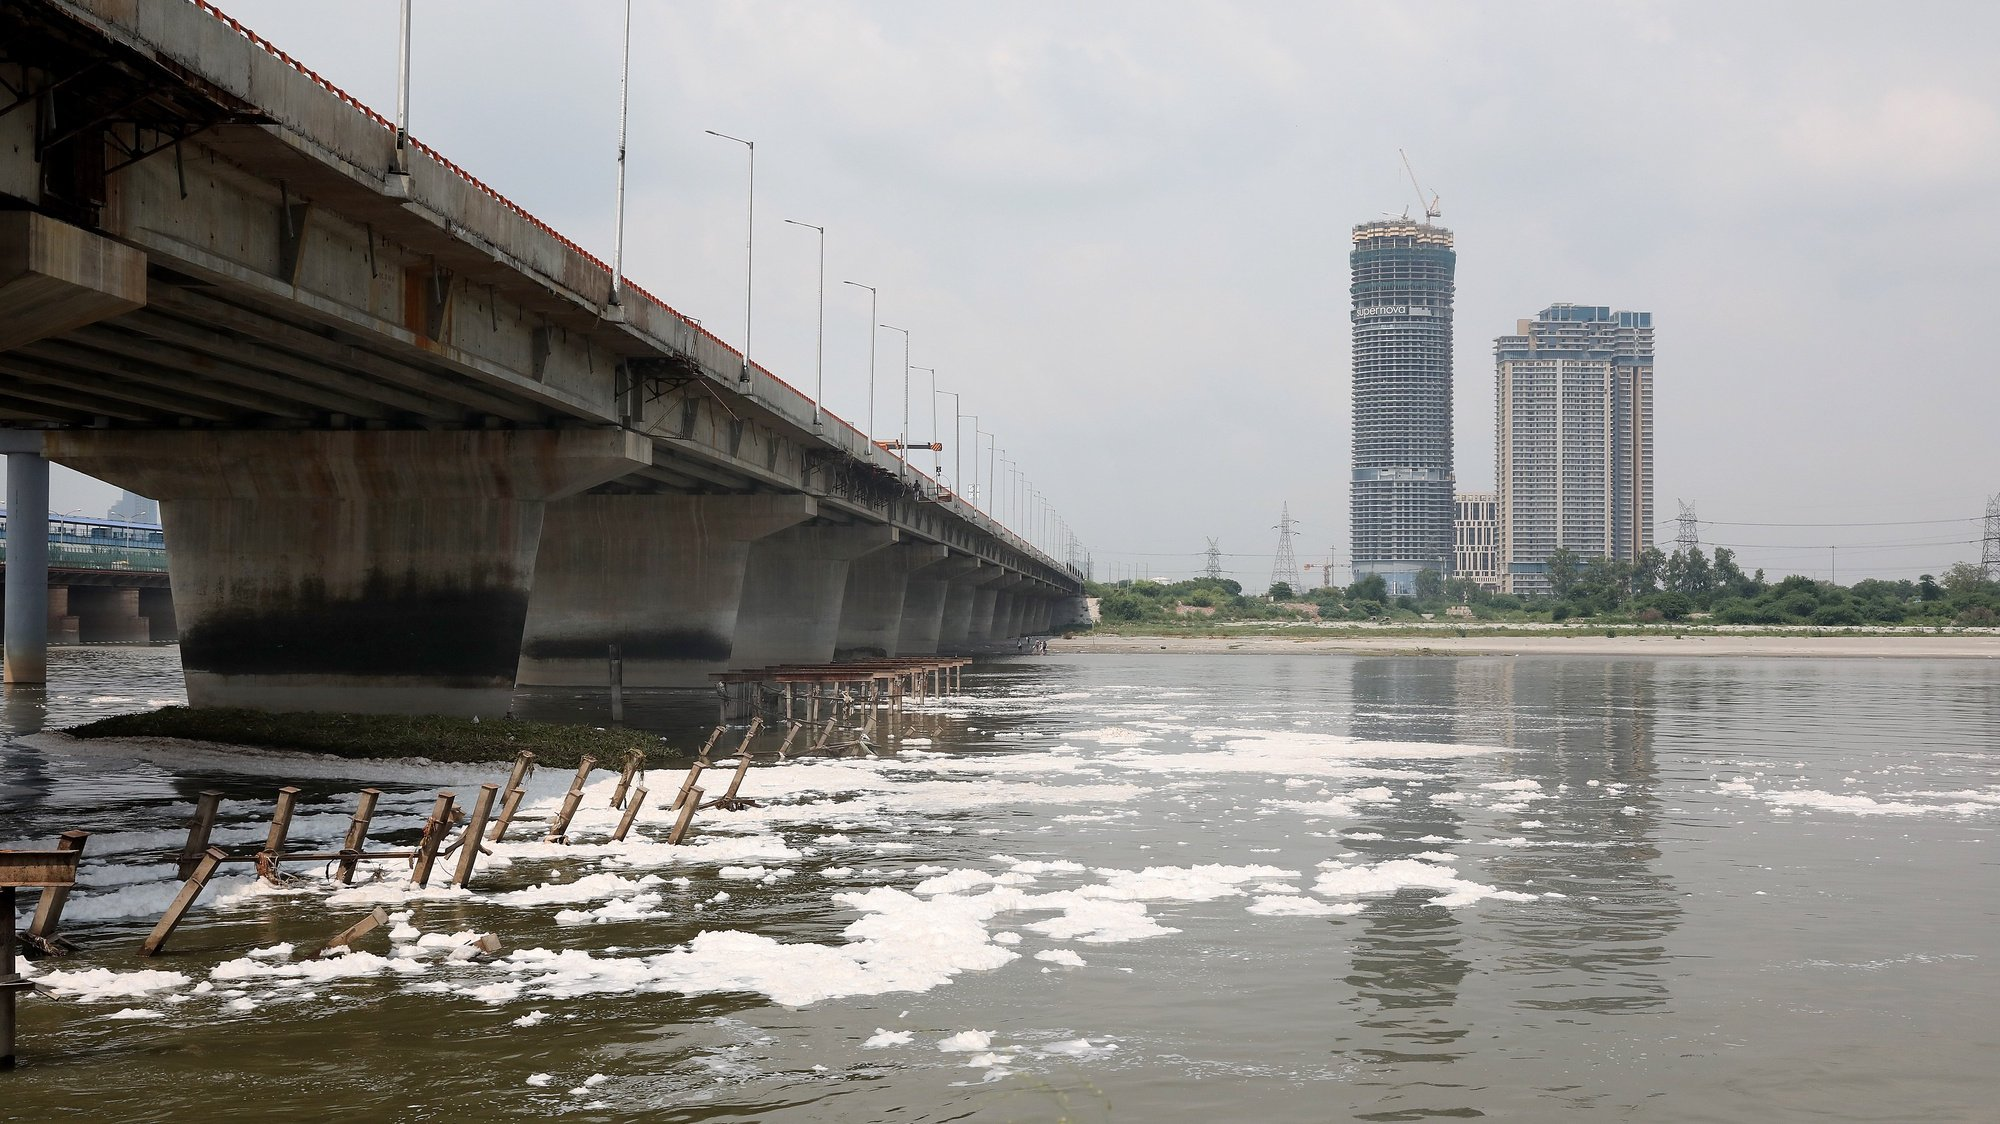 epa08589739 A general view of polluted Yamuna river that is covered with toxic foam caused by industrial waste in New Delhi, India, 07 August 2020. According to the news reports pollution returns to the river Yamuna after governments allowed relaxation in two months lockdown that was to prevent the spread of coronavirus and Covid 19.  EPA/HARISH TYAGI